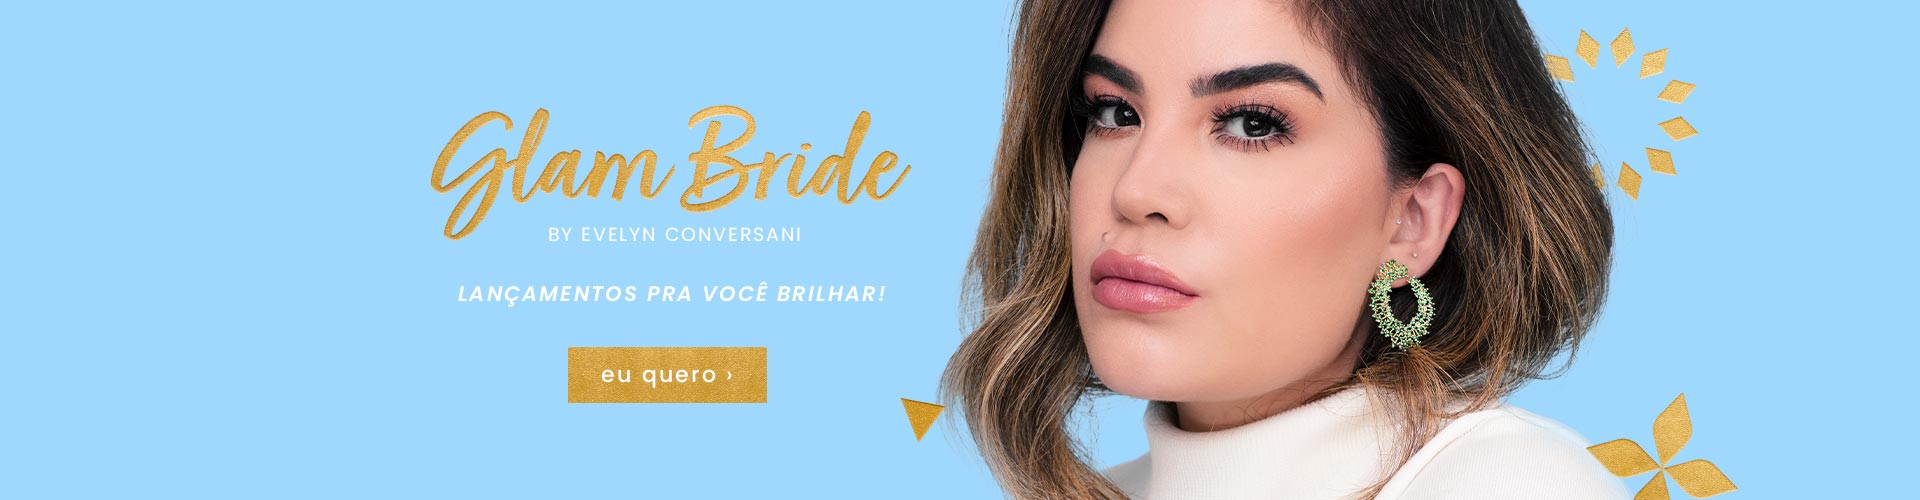 Glam Bride - Desktop